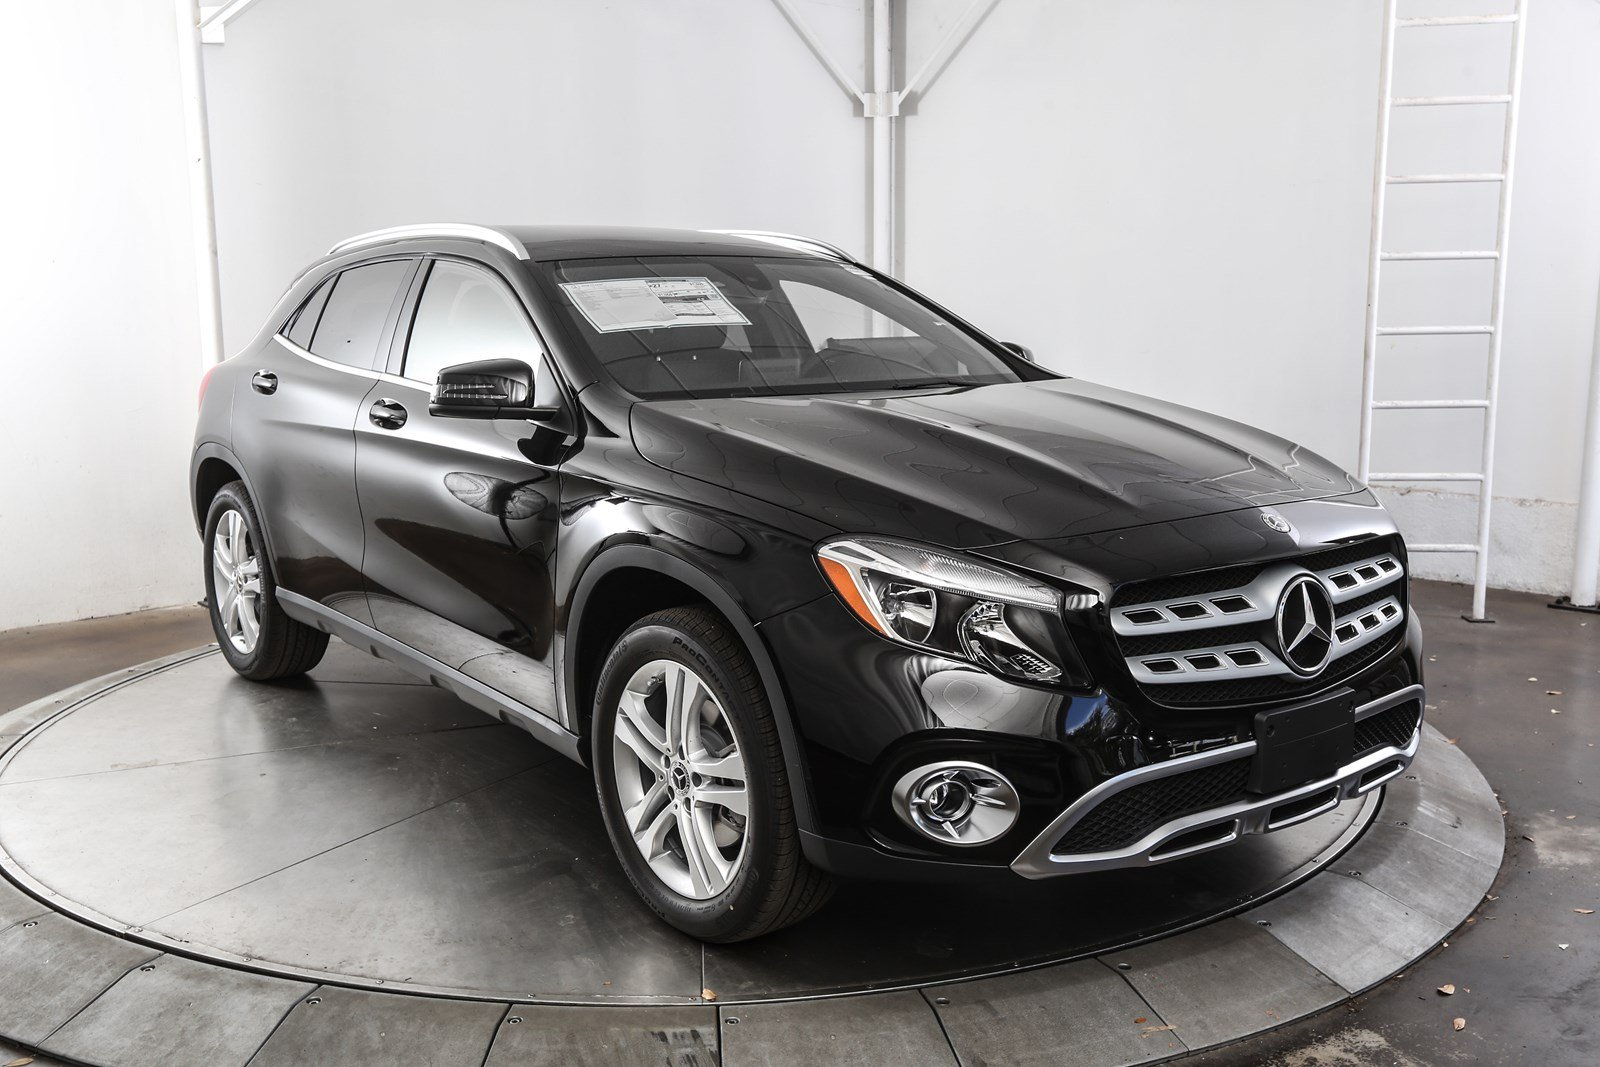 new 2018 mercedes benz gla gla 250 suv in austin m57775 mercedes benz of austin. Black Bedroom Furniture Sets. Home Design Ideas